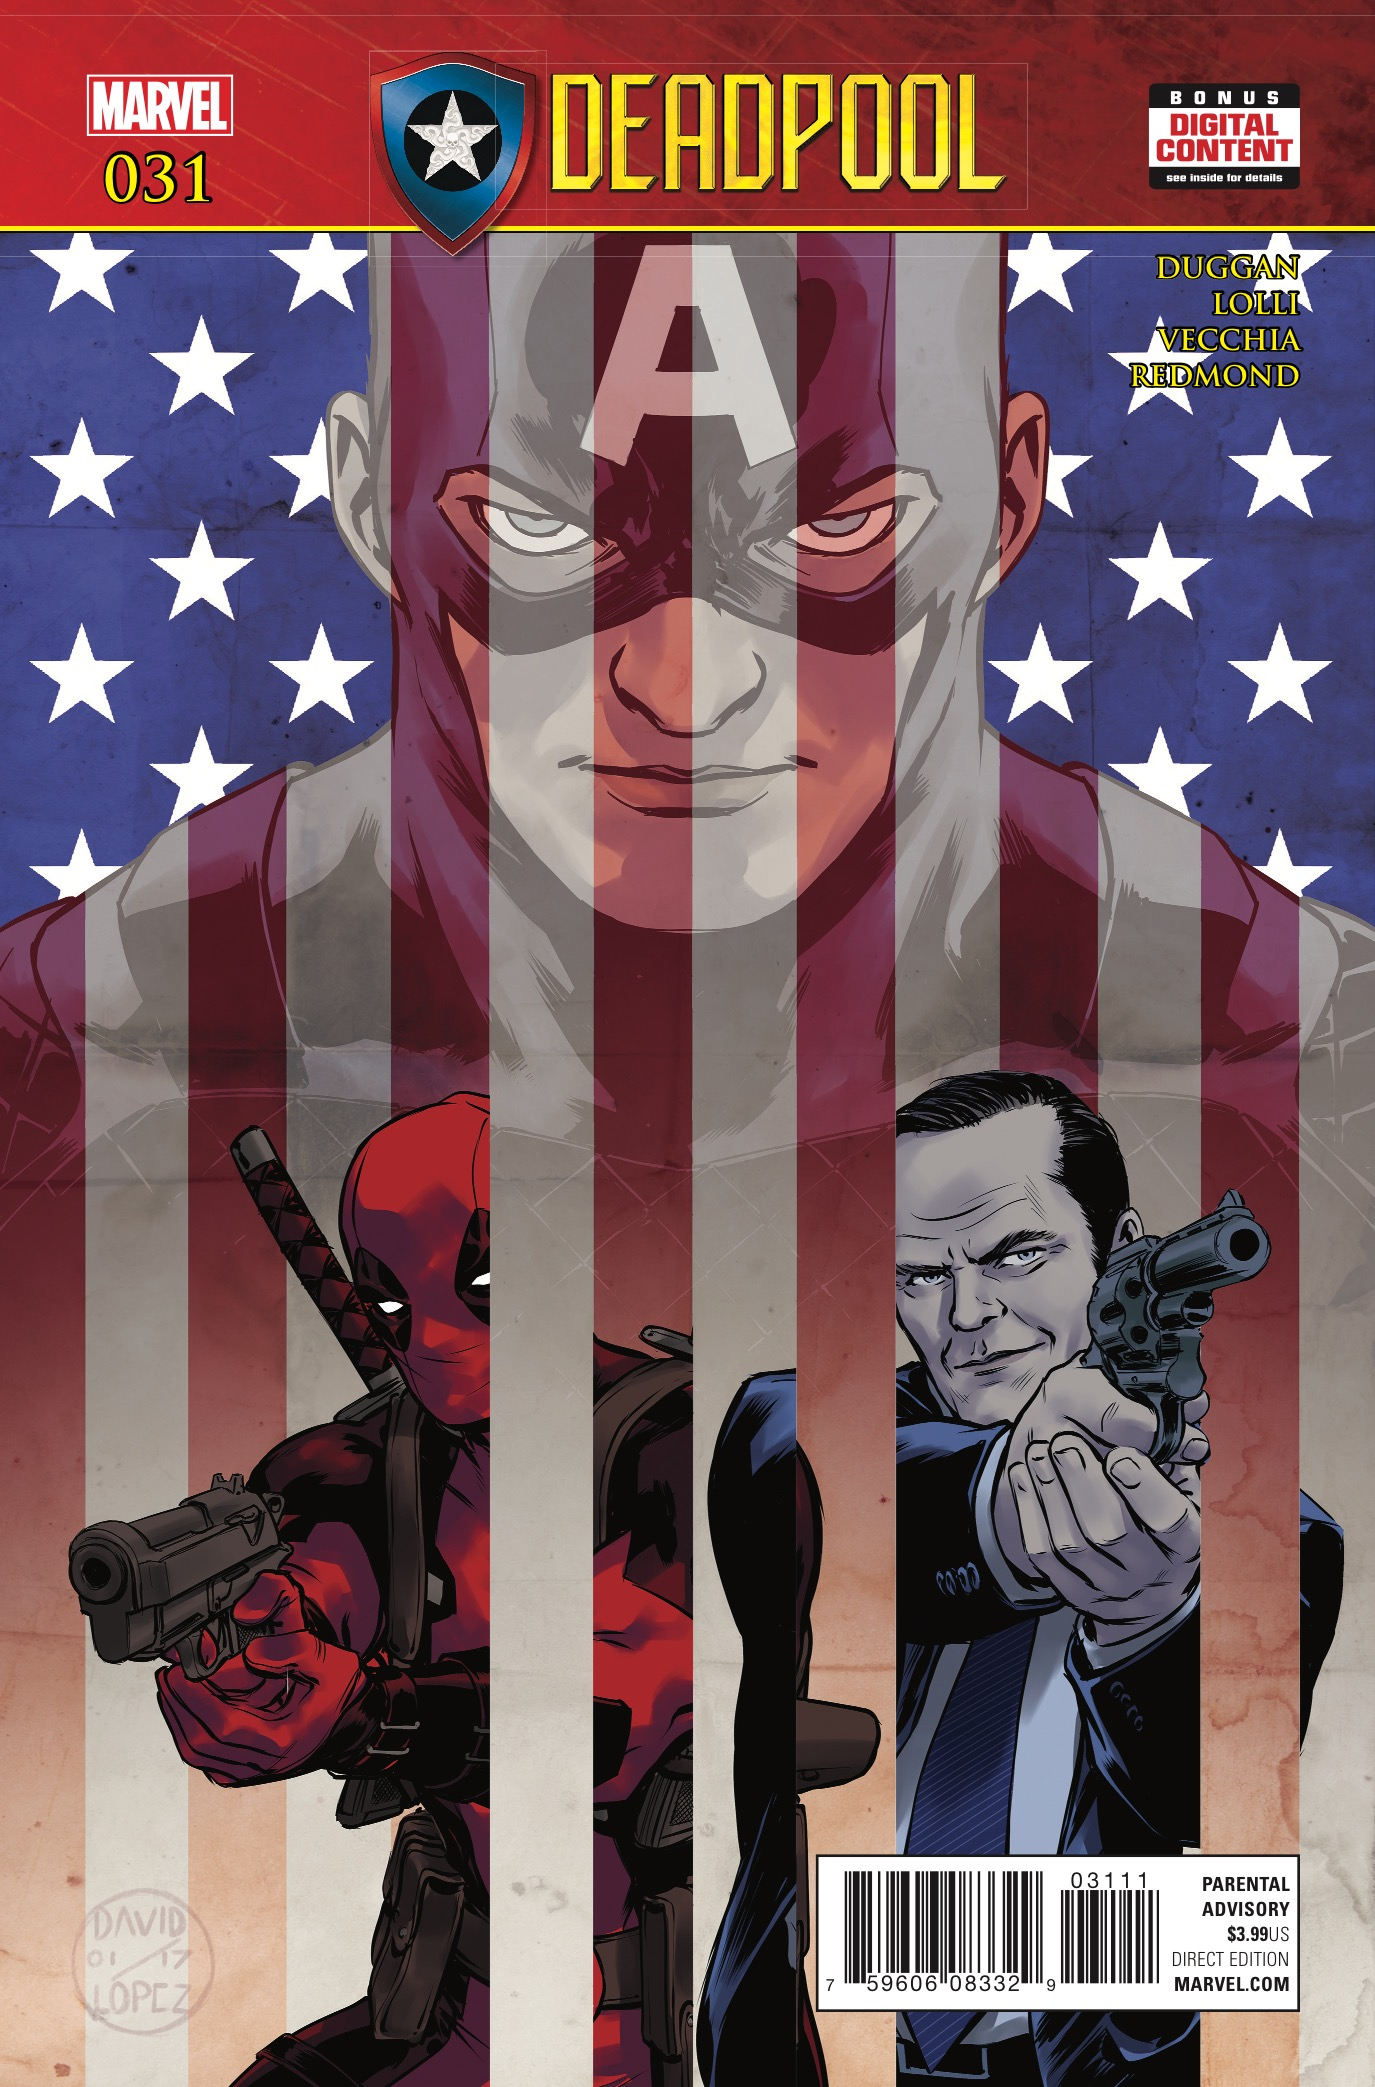 Considering how dark and upsetting the Secret Empire event has been I've been dying to read Deadpool. His innocent and silly nature could bring your spirits up. Then again, this is a tie-in, so how the heck does Gerry Duggan pull such a fun character into such a dark time?